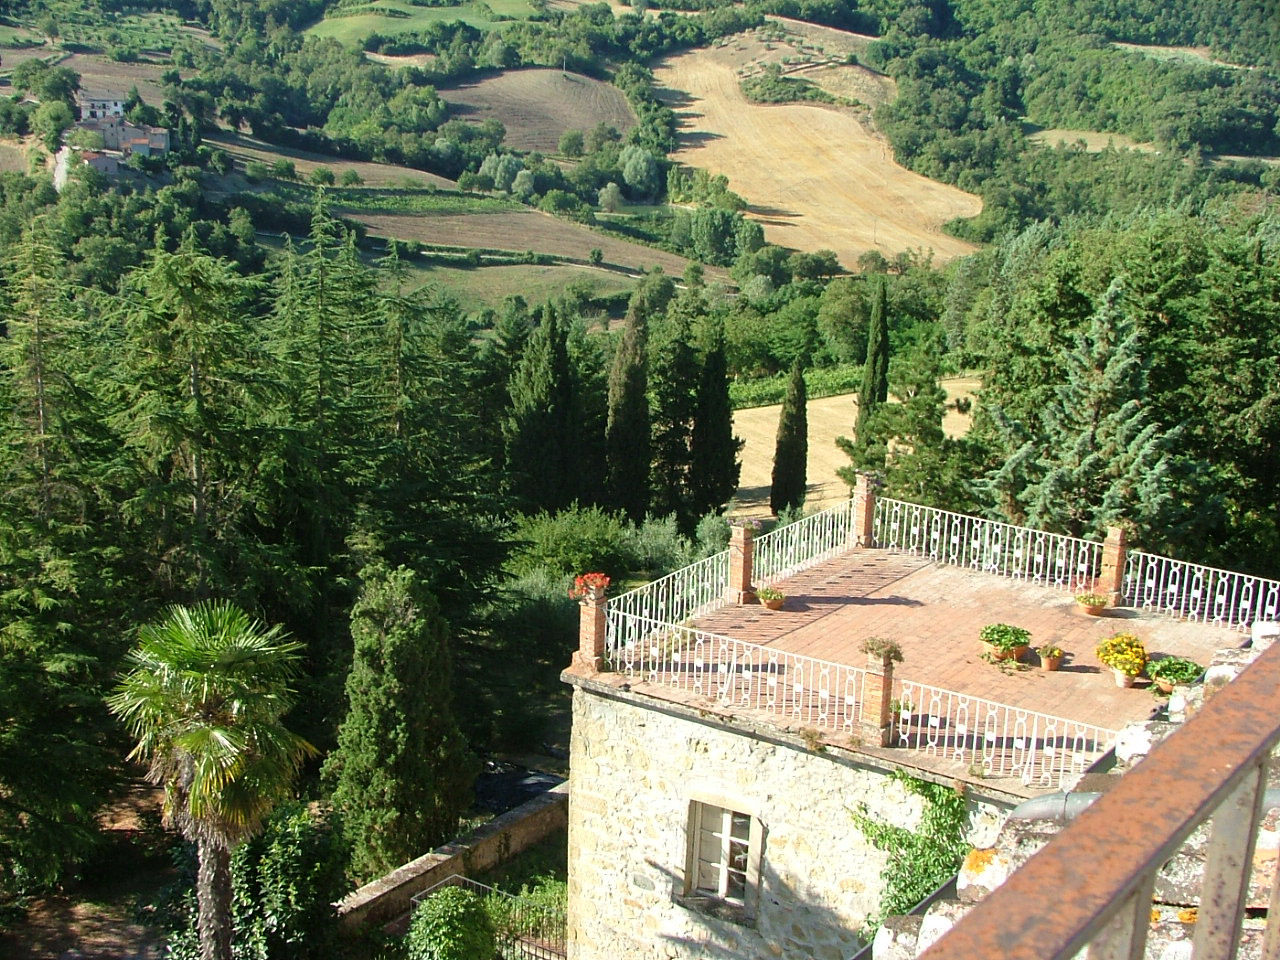 view from the balcony in Tuscany